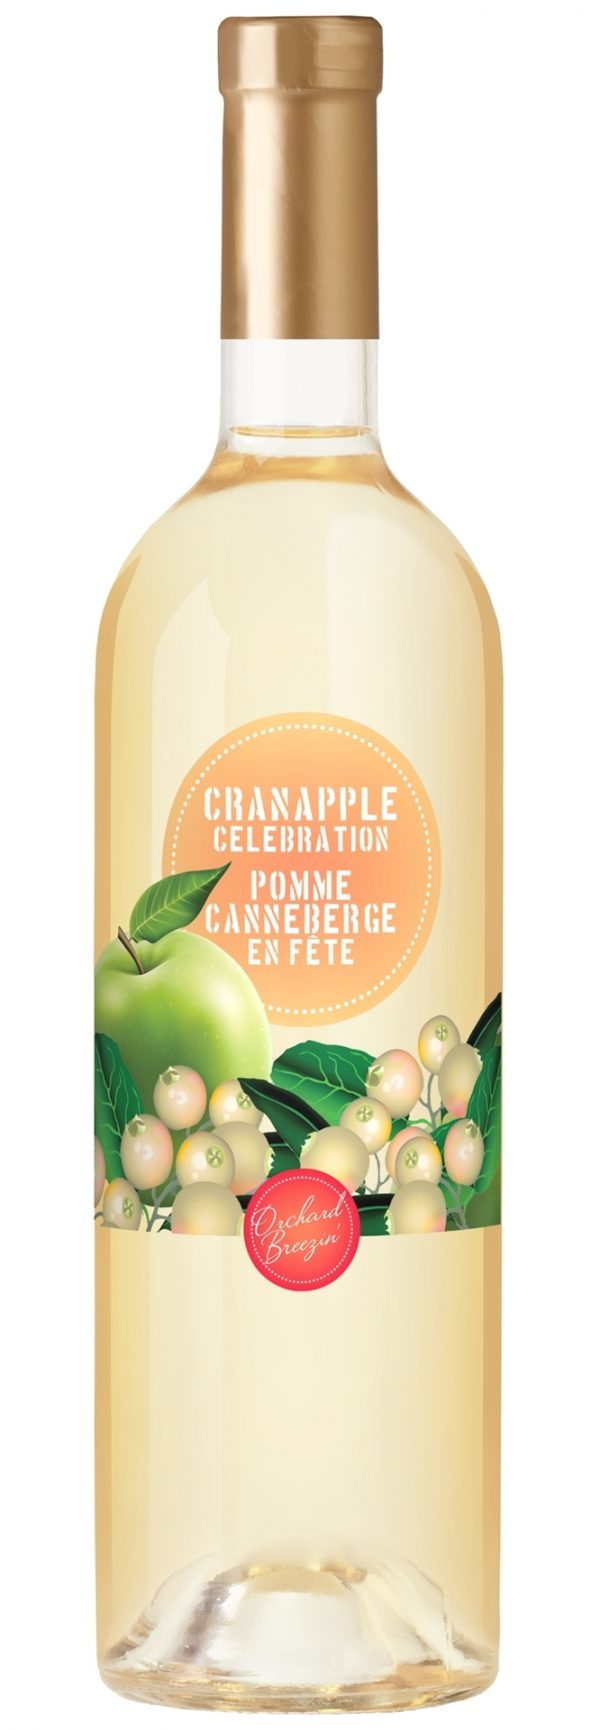 Cranapple Celebration - Orchard Breezin'-0